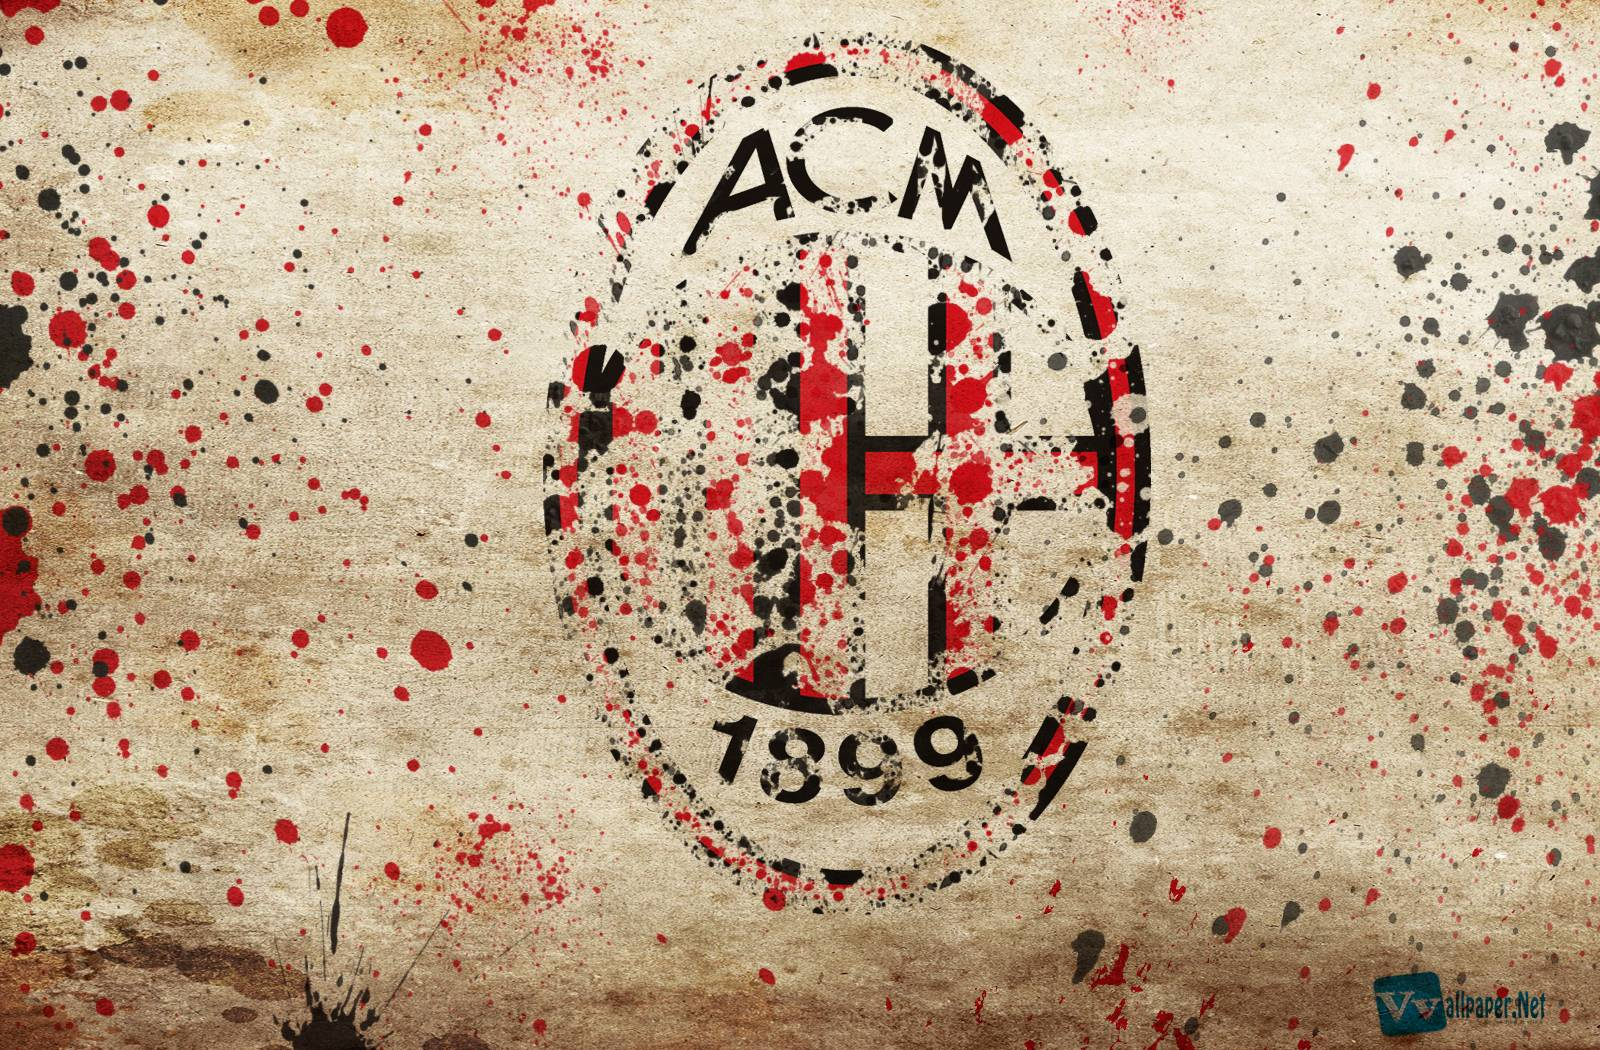 Hd wallpaper ac milan - Ac Milan Wallpapers Page 3